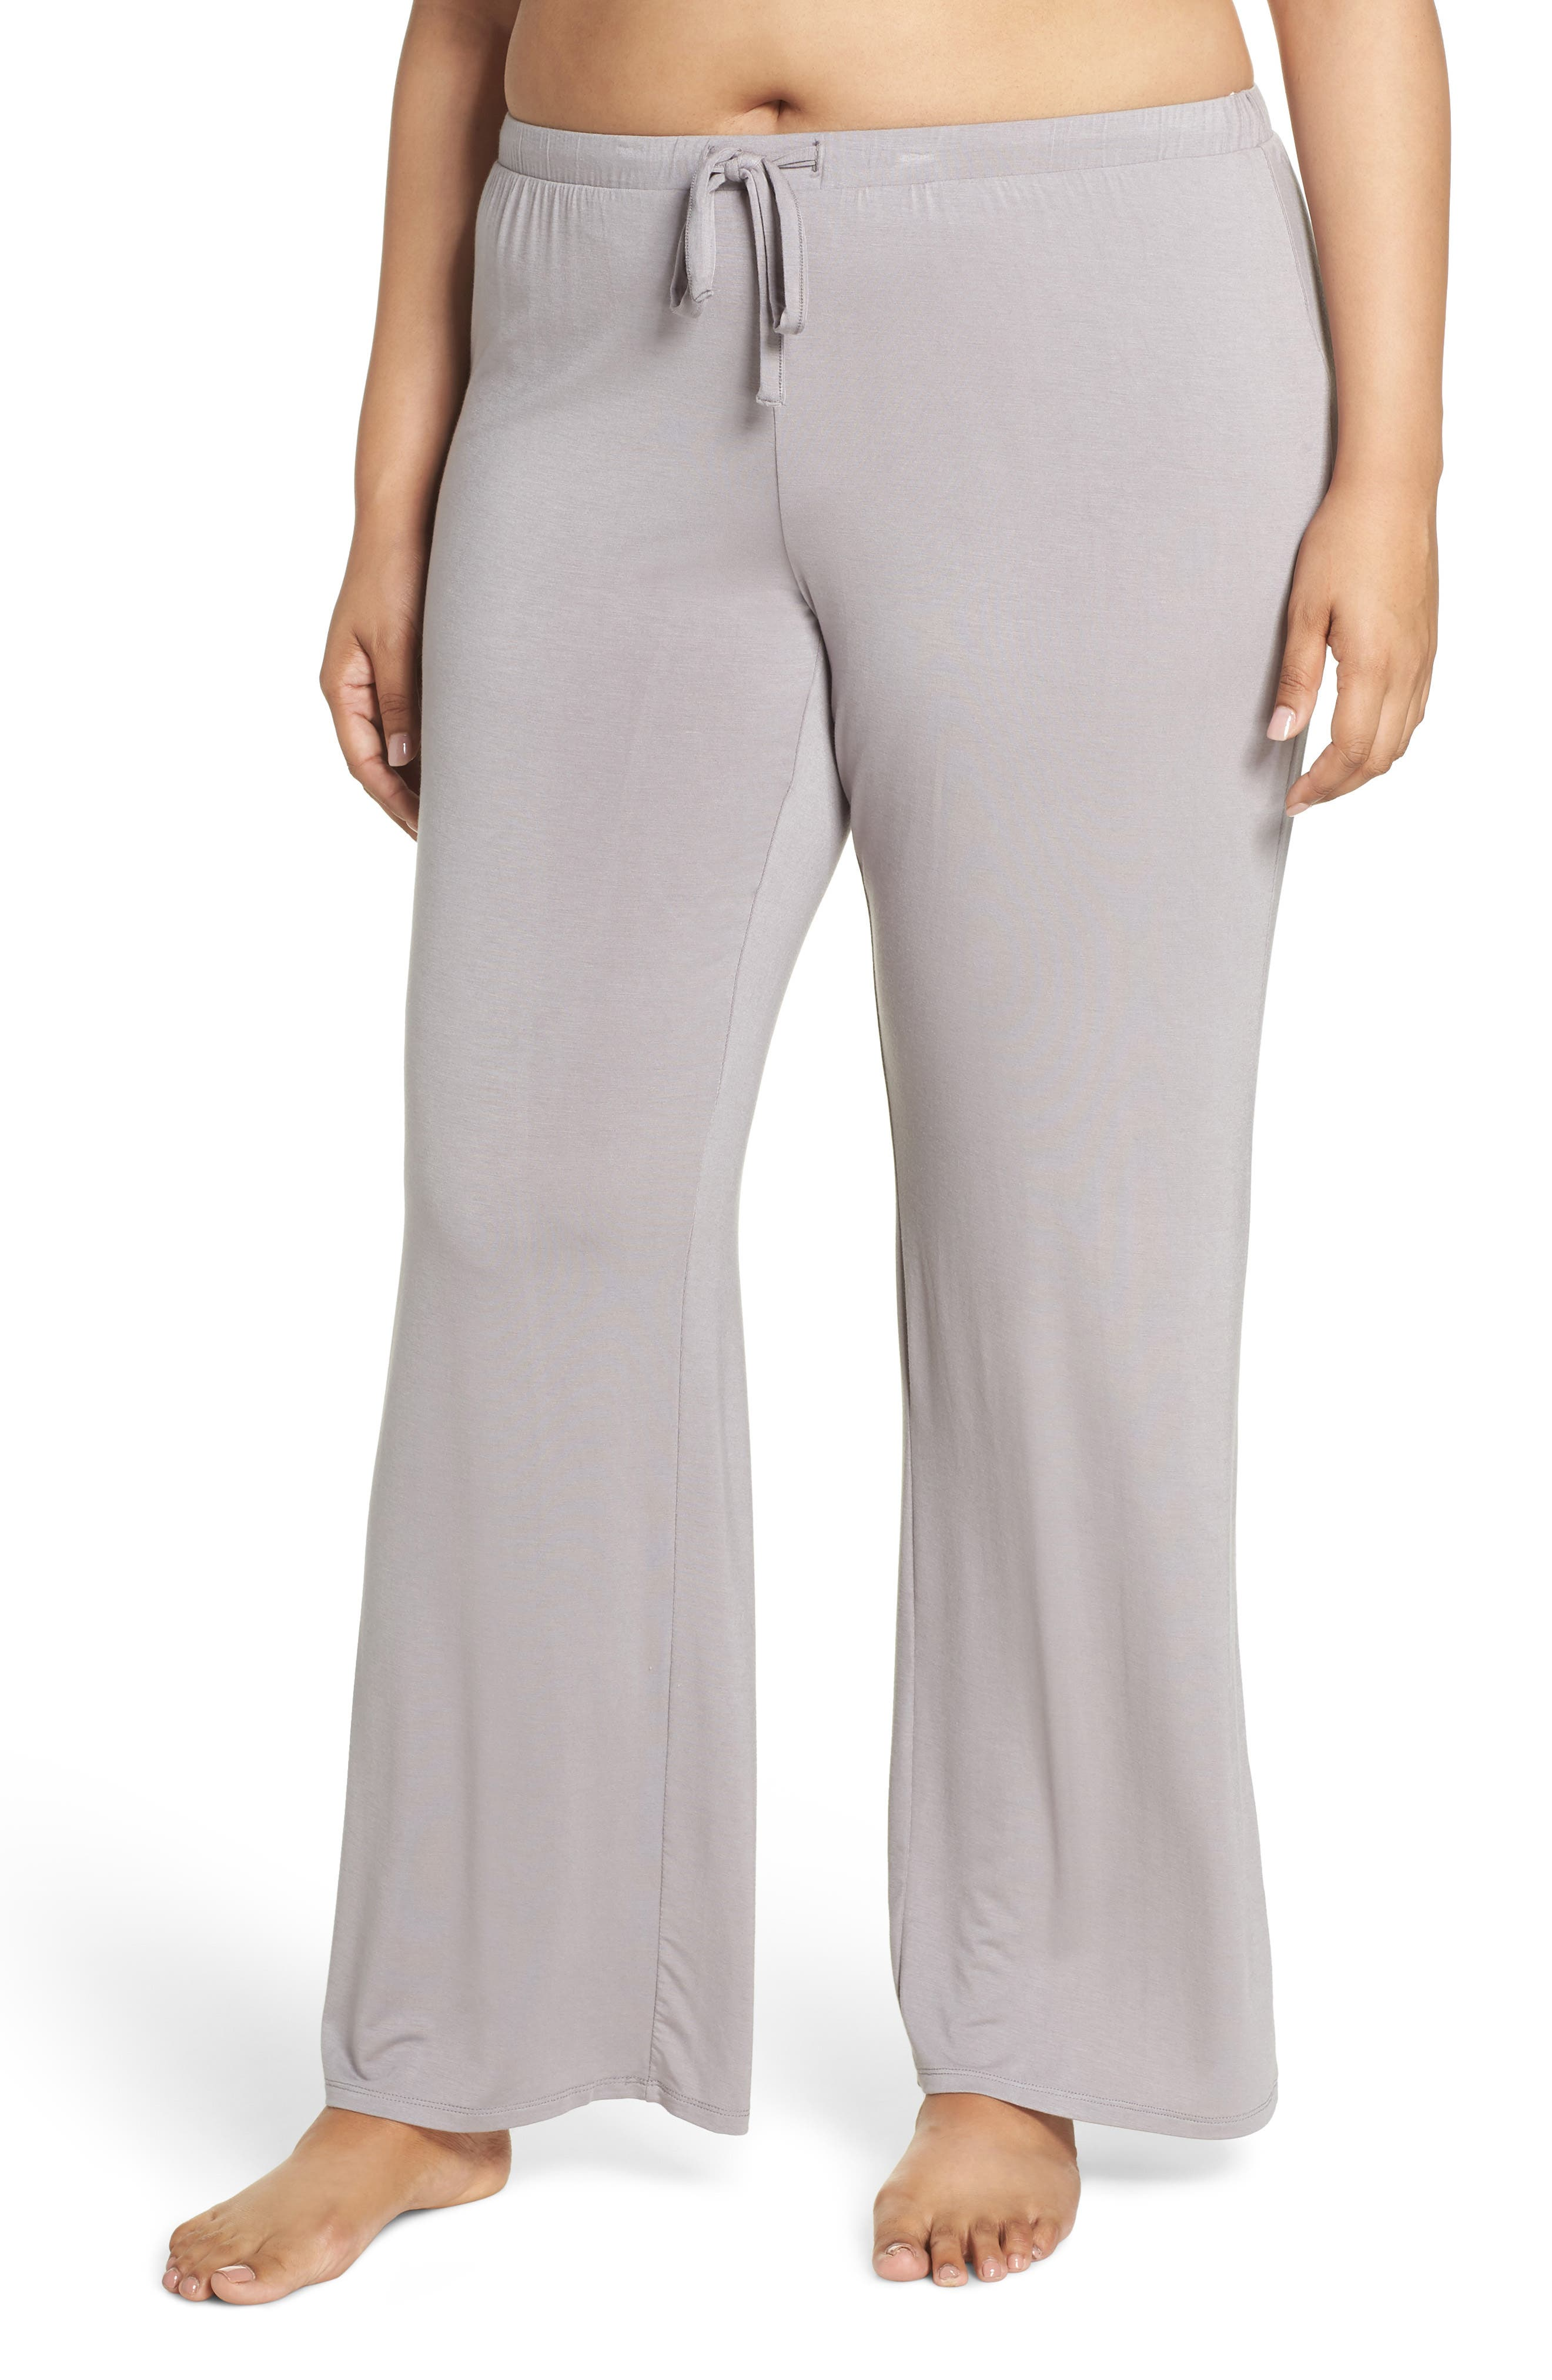 Breathe Lounge Pants,                             Main thumbnail 1, color,                             GREY GULL